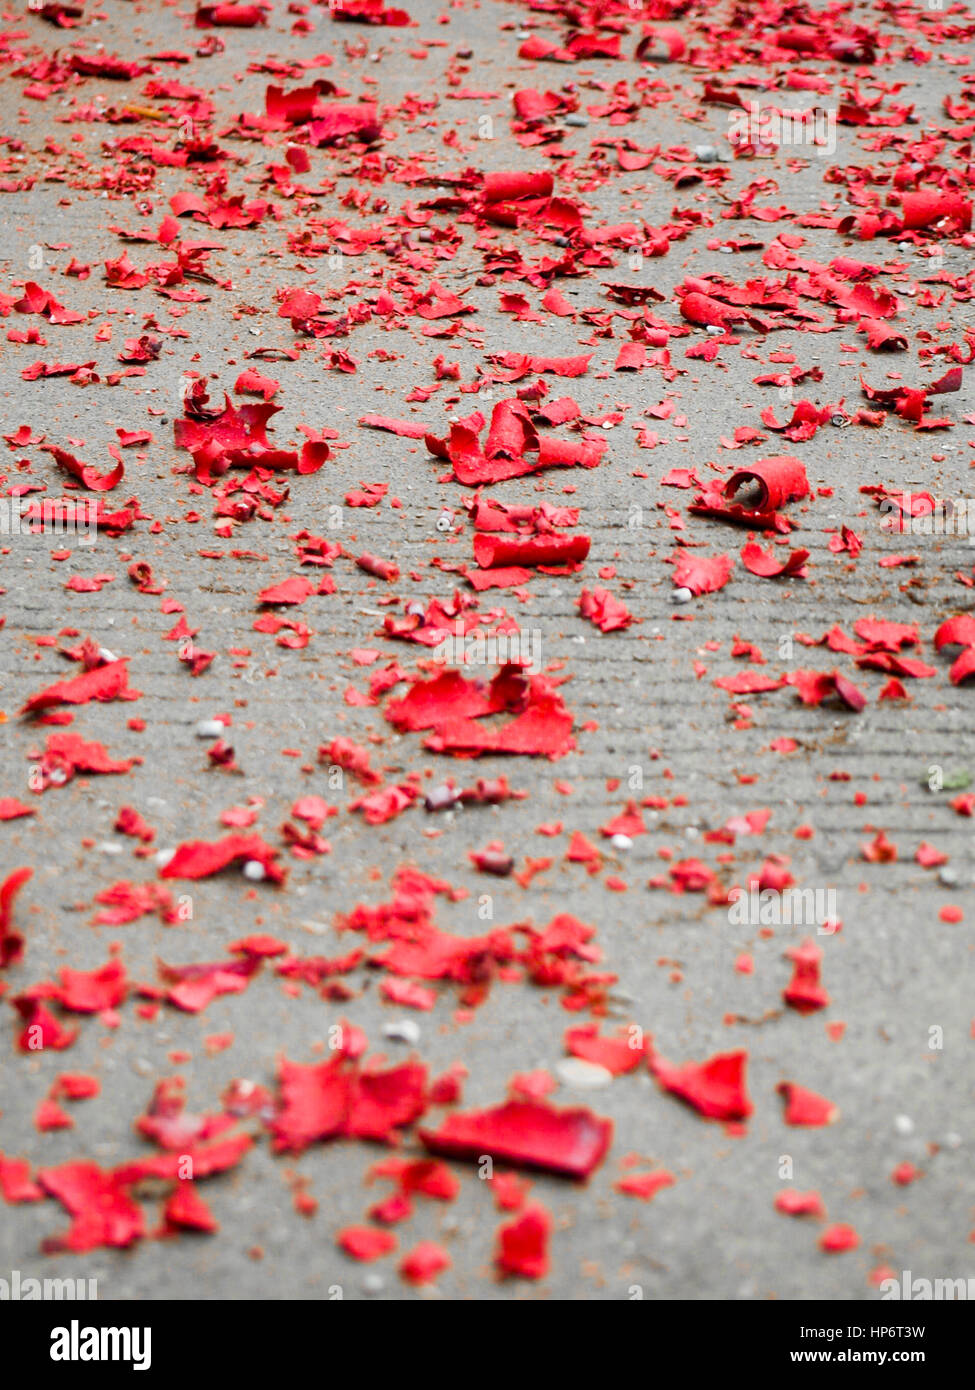 The Day After Chinese New Year, Red Paper Scraps Spread Across The Ground  Left Over From The Celebrations Of The Night Before.